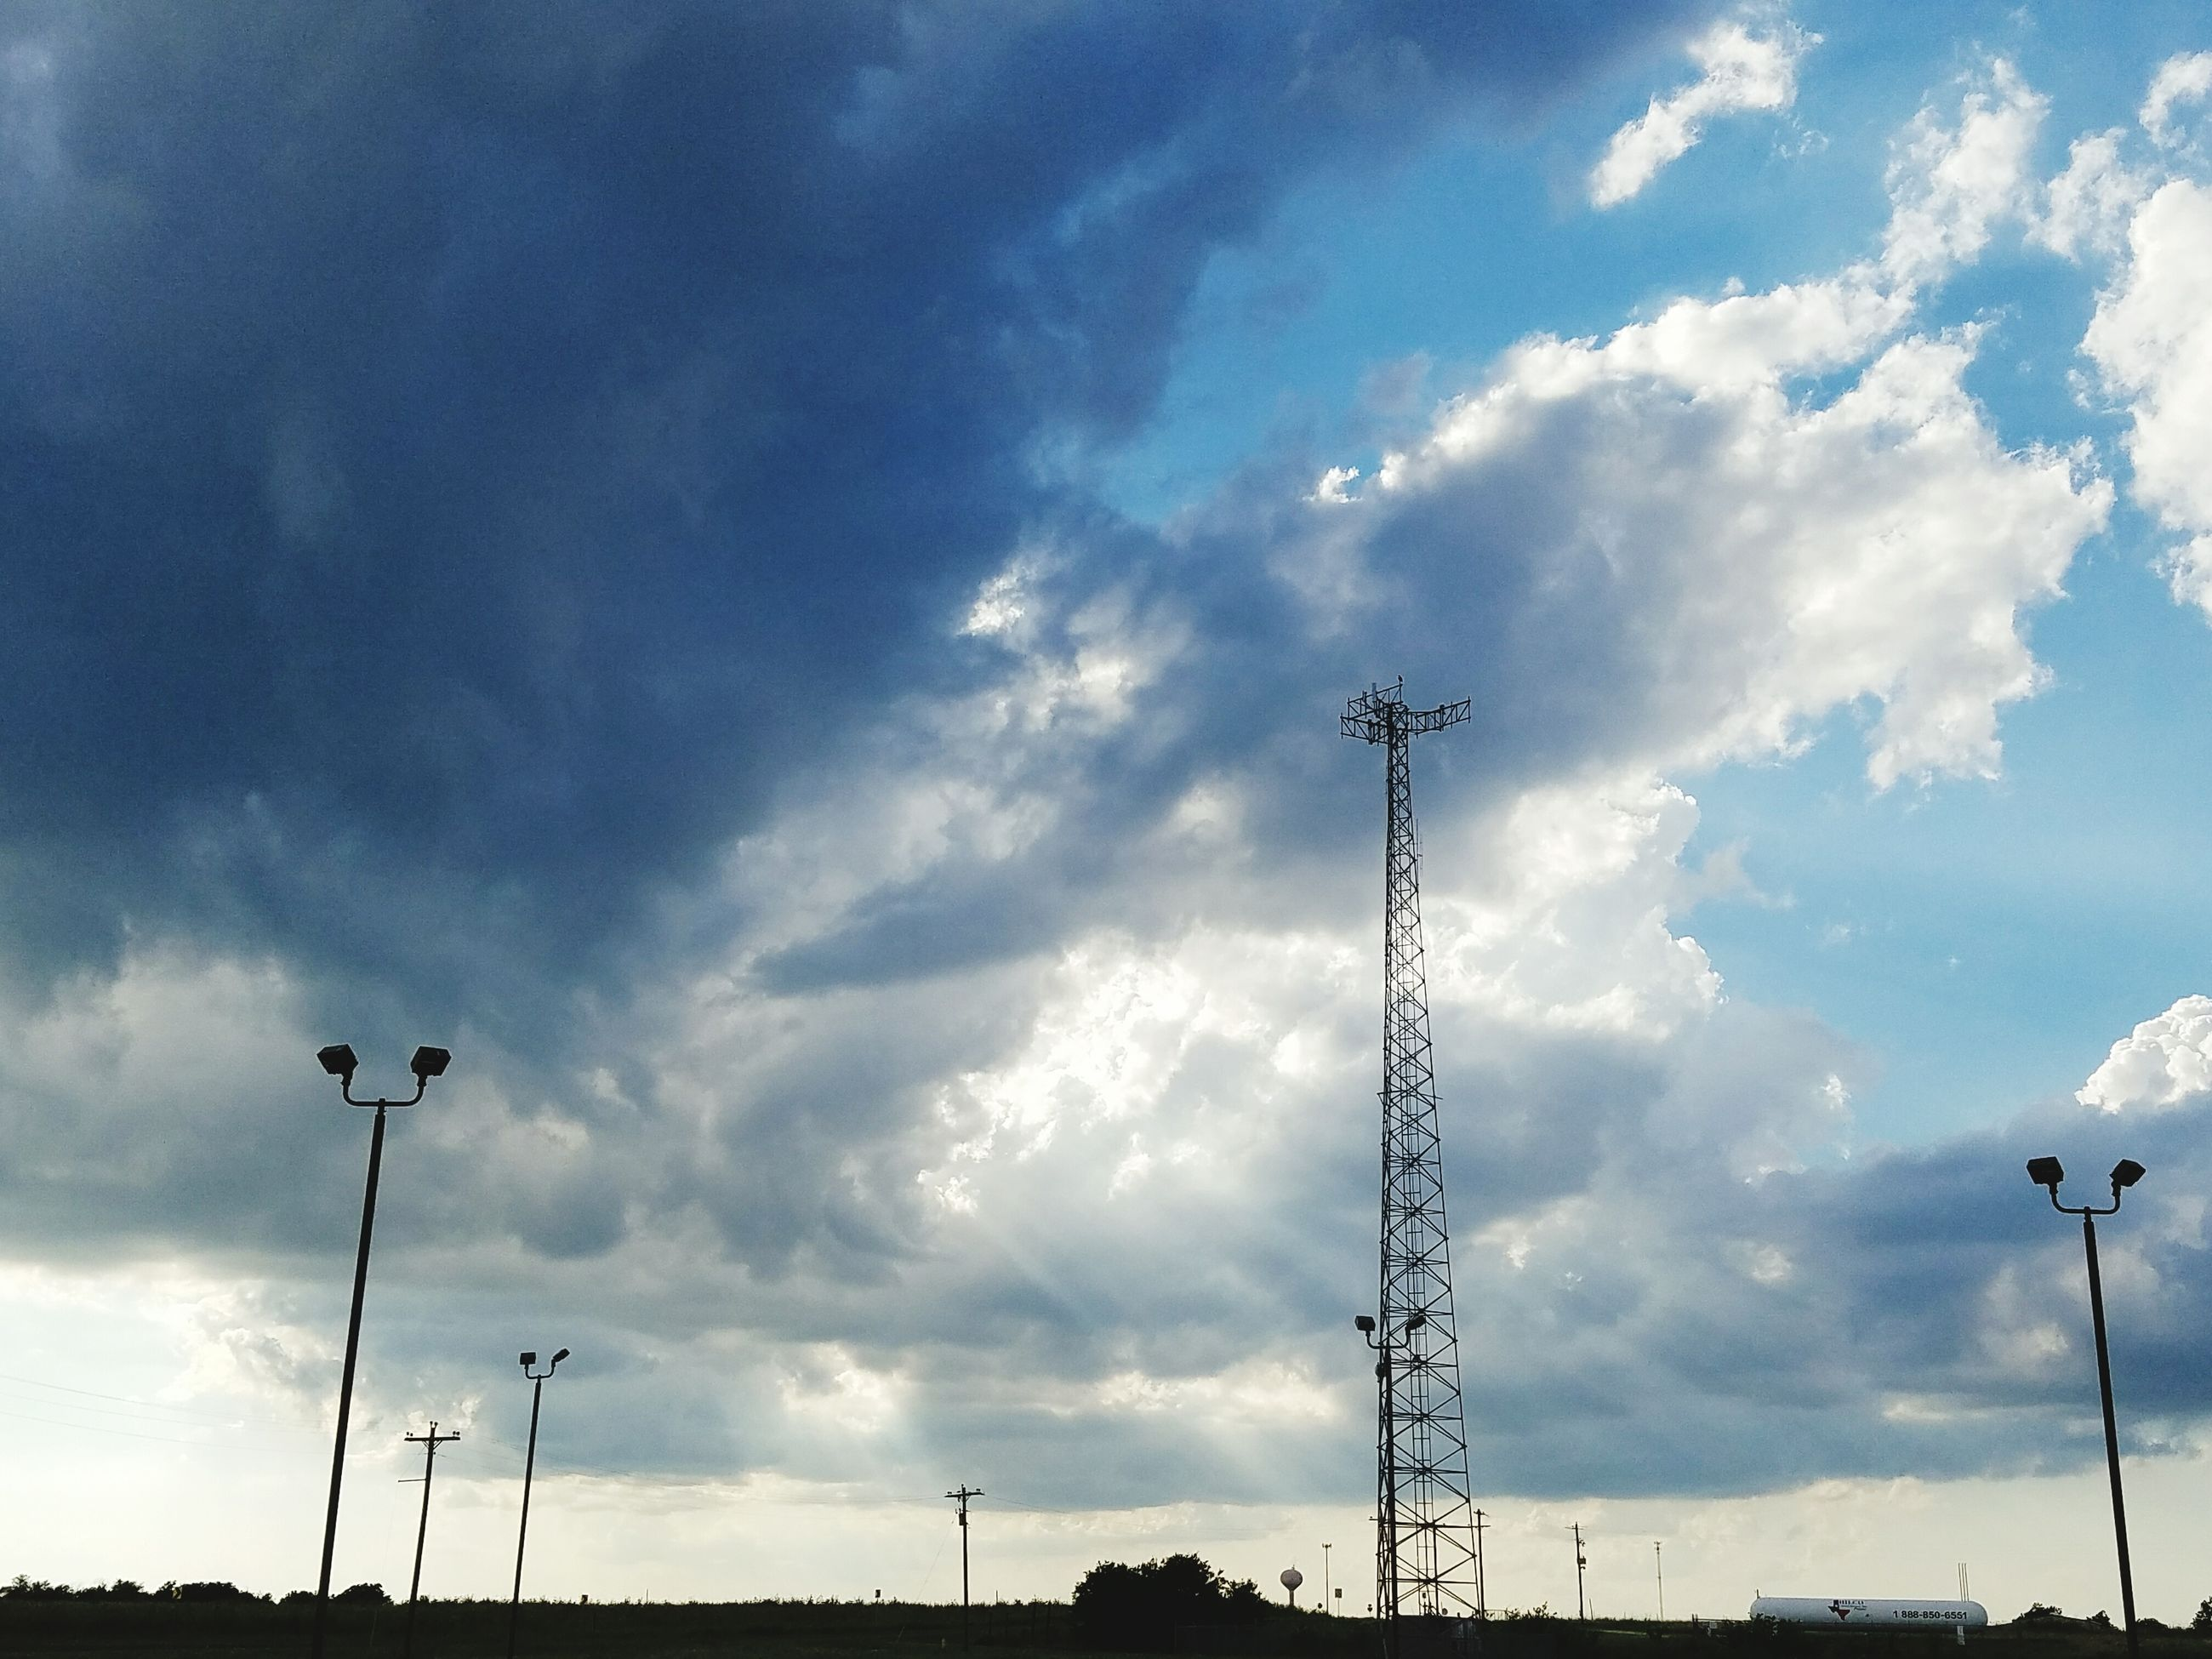 sky, low angle view, cloud - sky, electricity, cloudy, power line, electricity pylon, technology, fuel and power generation, street light, power supply, cloud, connection, silhouette, lighting equipment, cable, nature, tranquility, outdoors, pole